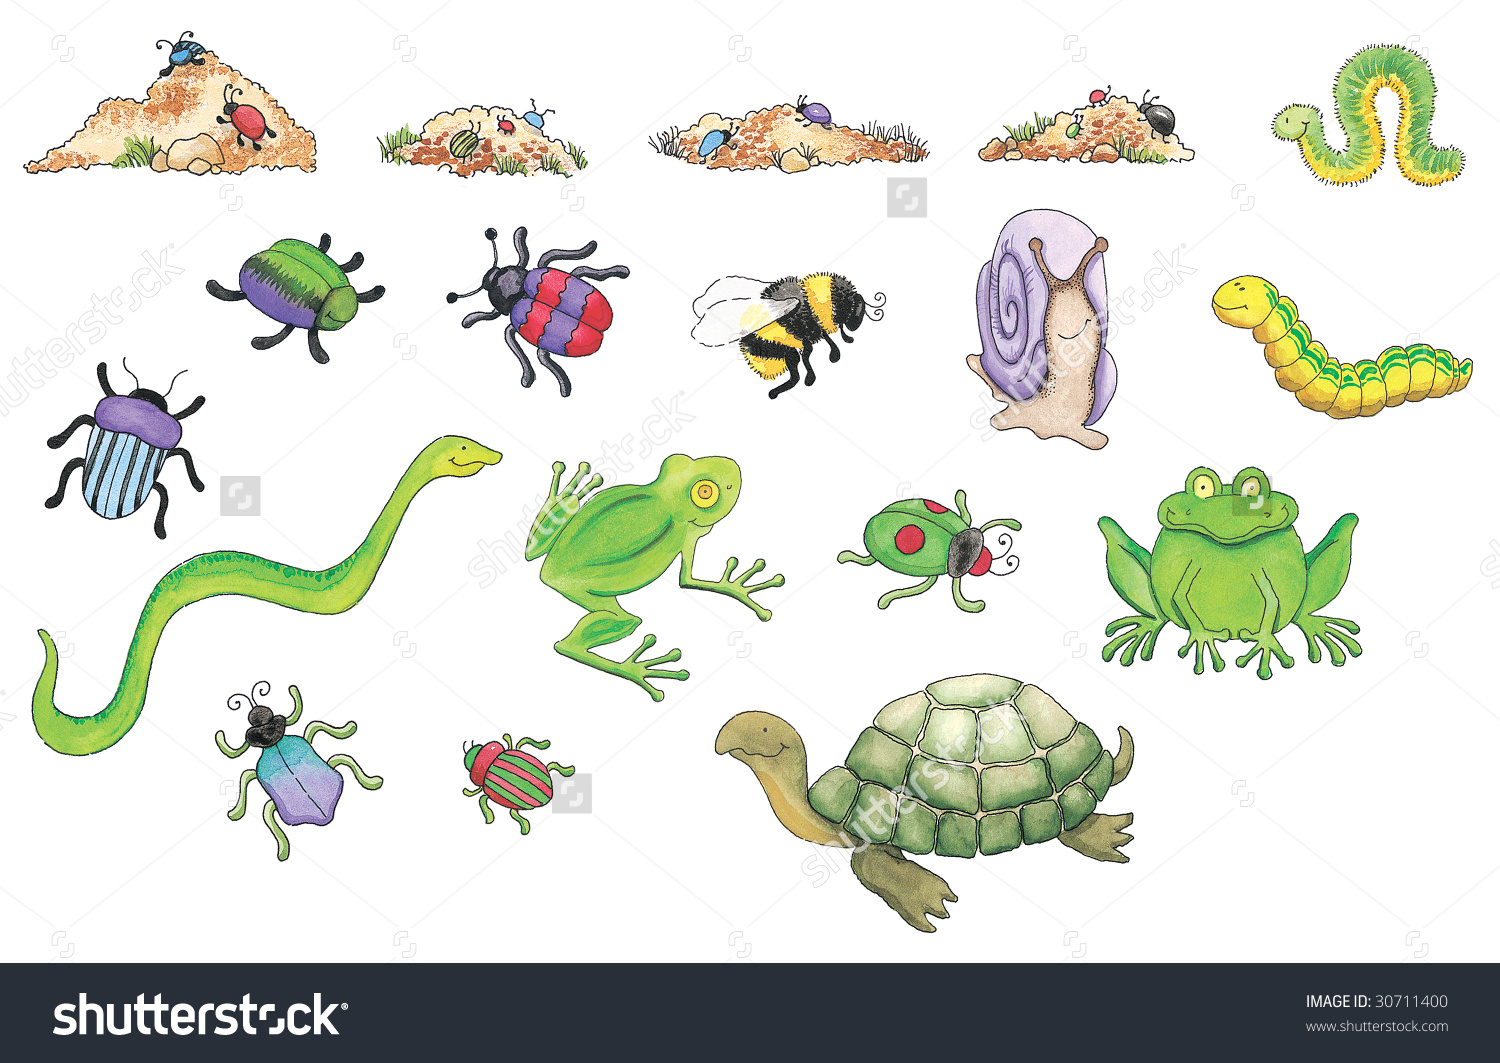 Creepy Crawlers Stock Photo 30711400 : Shutterstock.